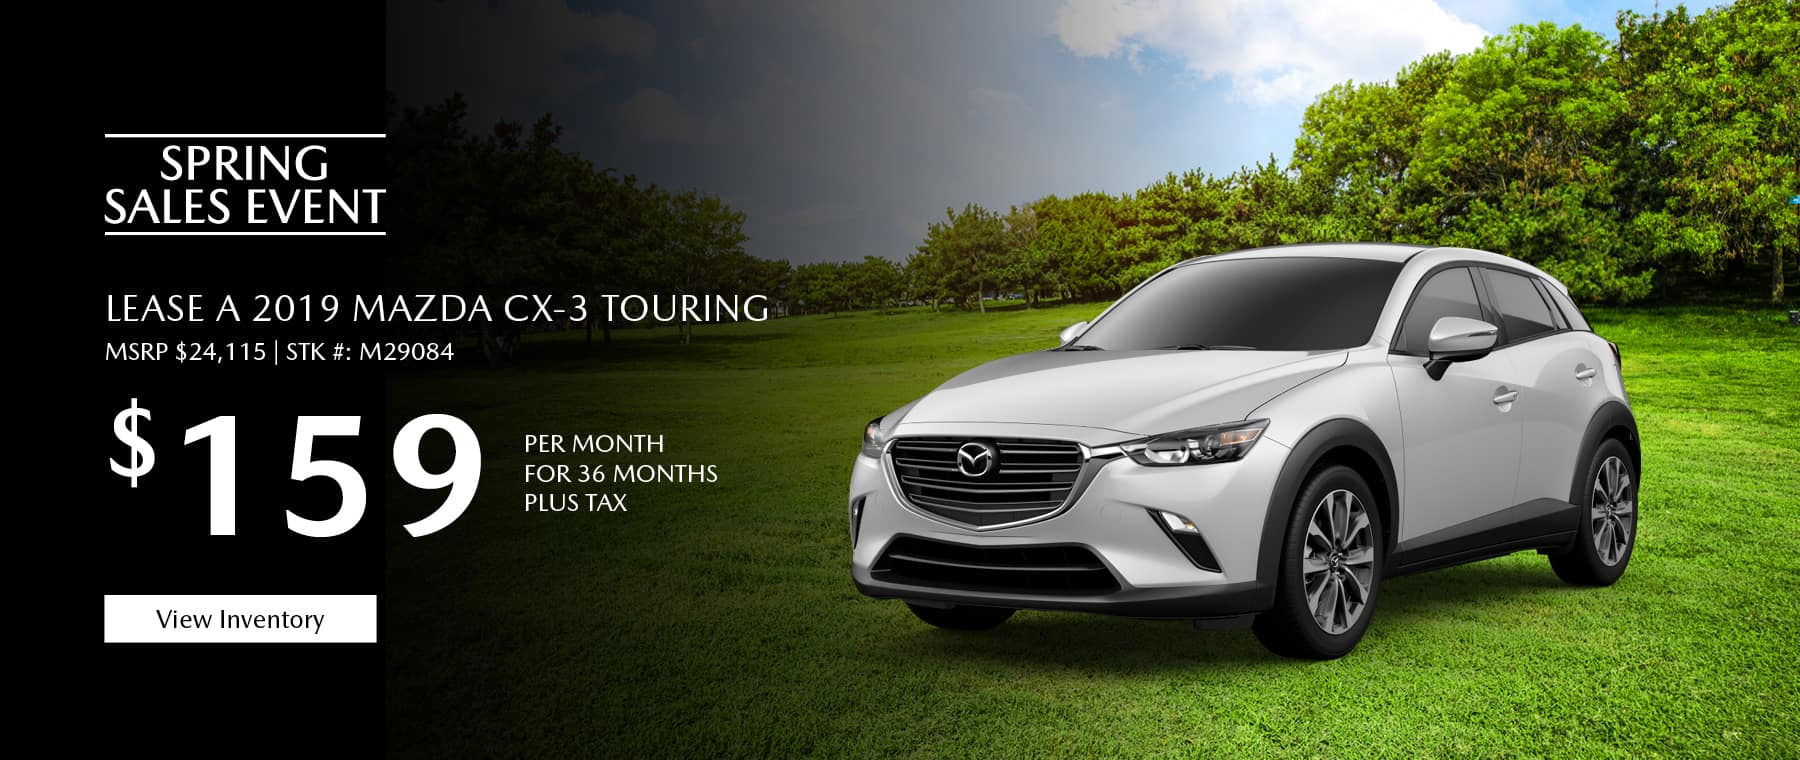 Lease the 2019 Mazda CX-3 Touring for $159 per month, plus tax.